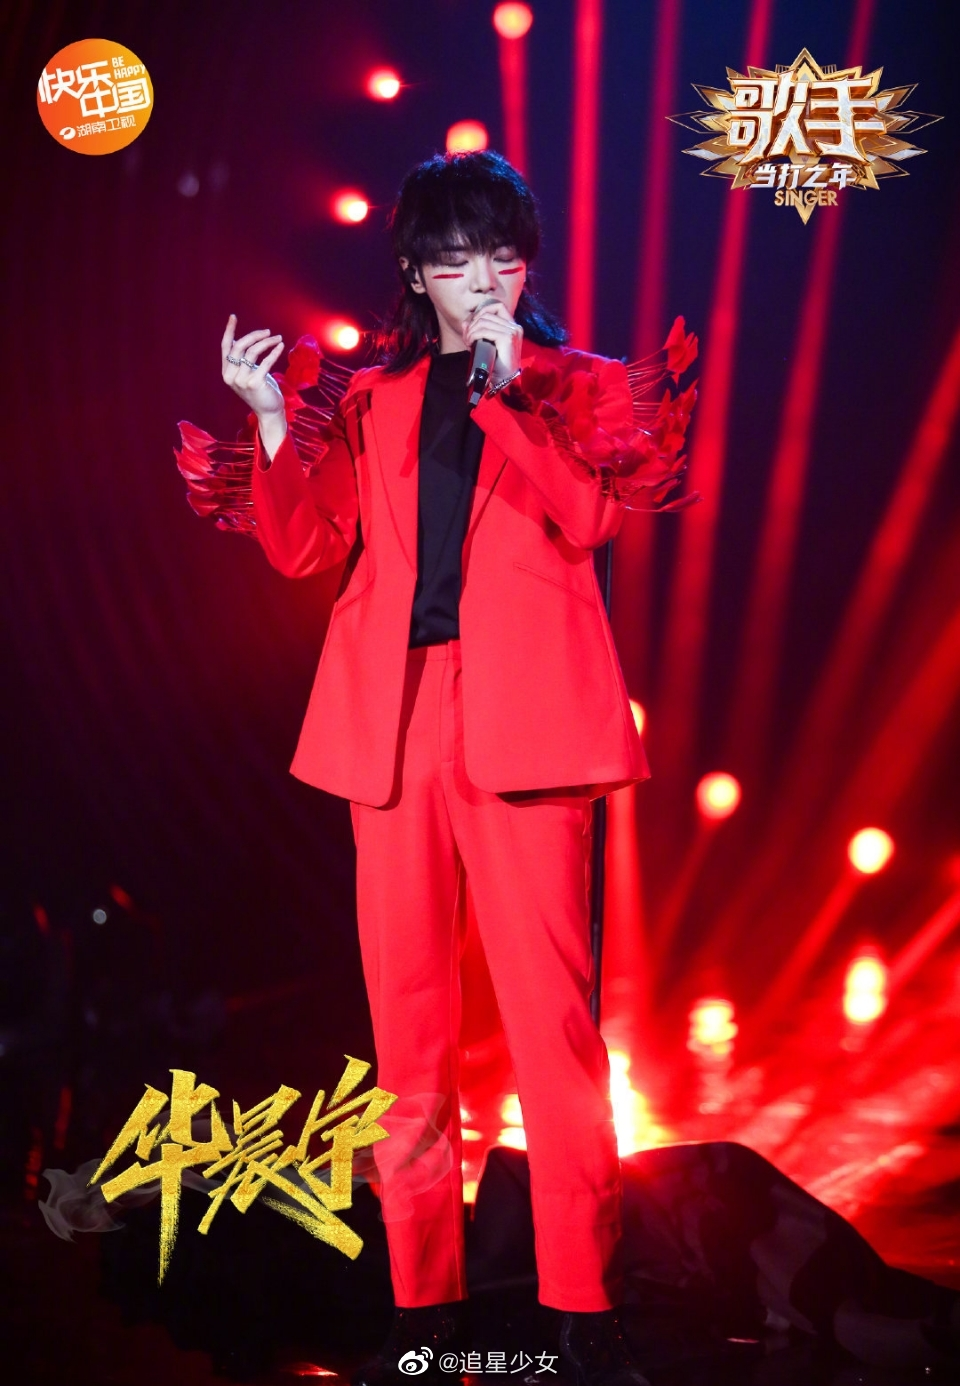 CentKent: Hua Chenyu wins first place in Singer 2020 finals.